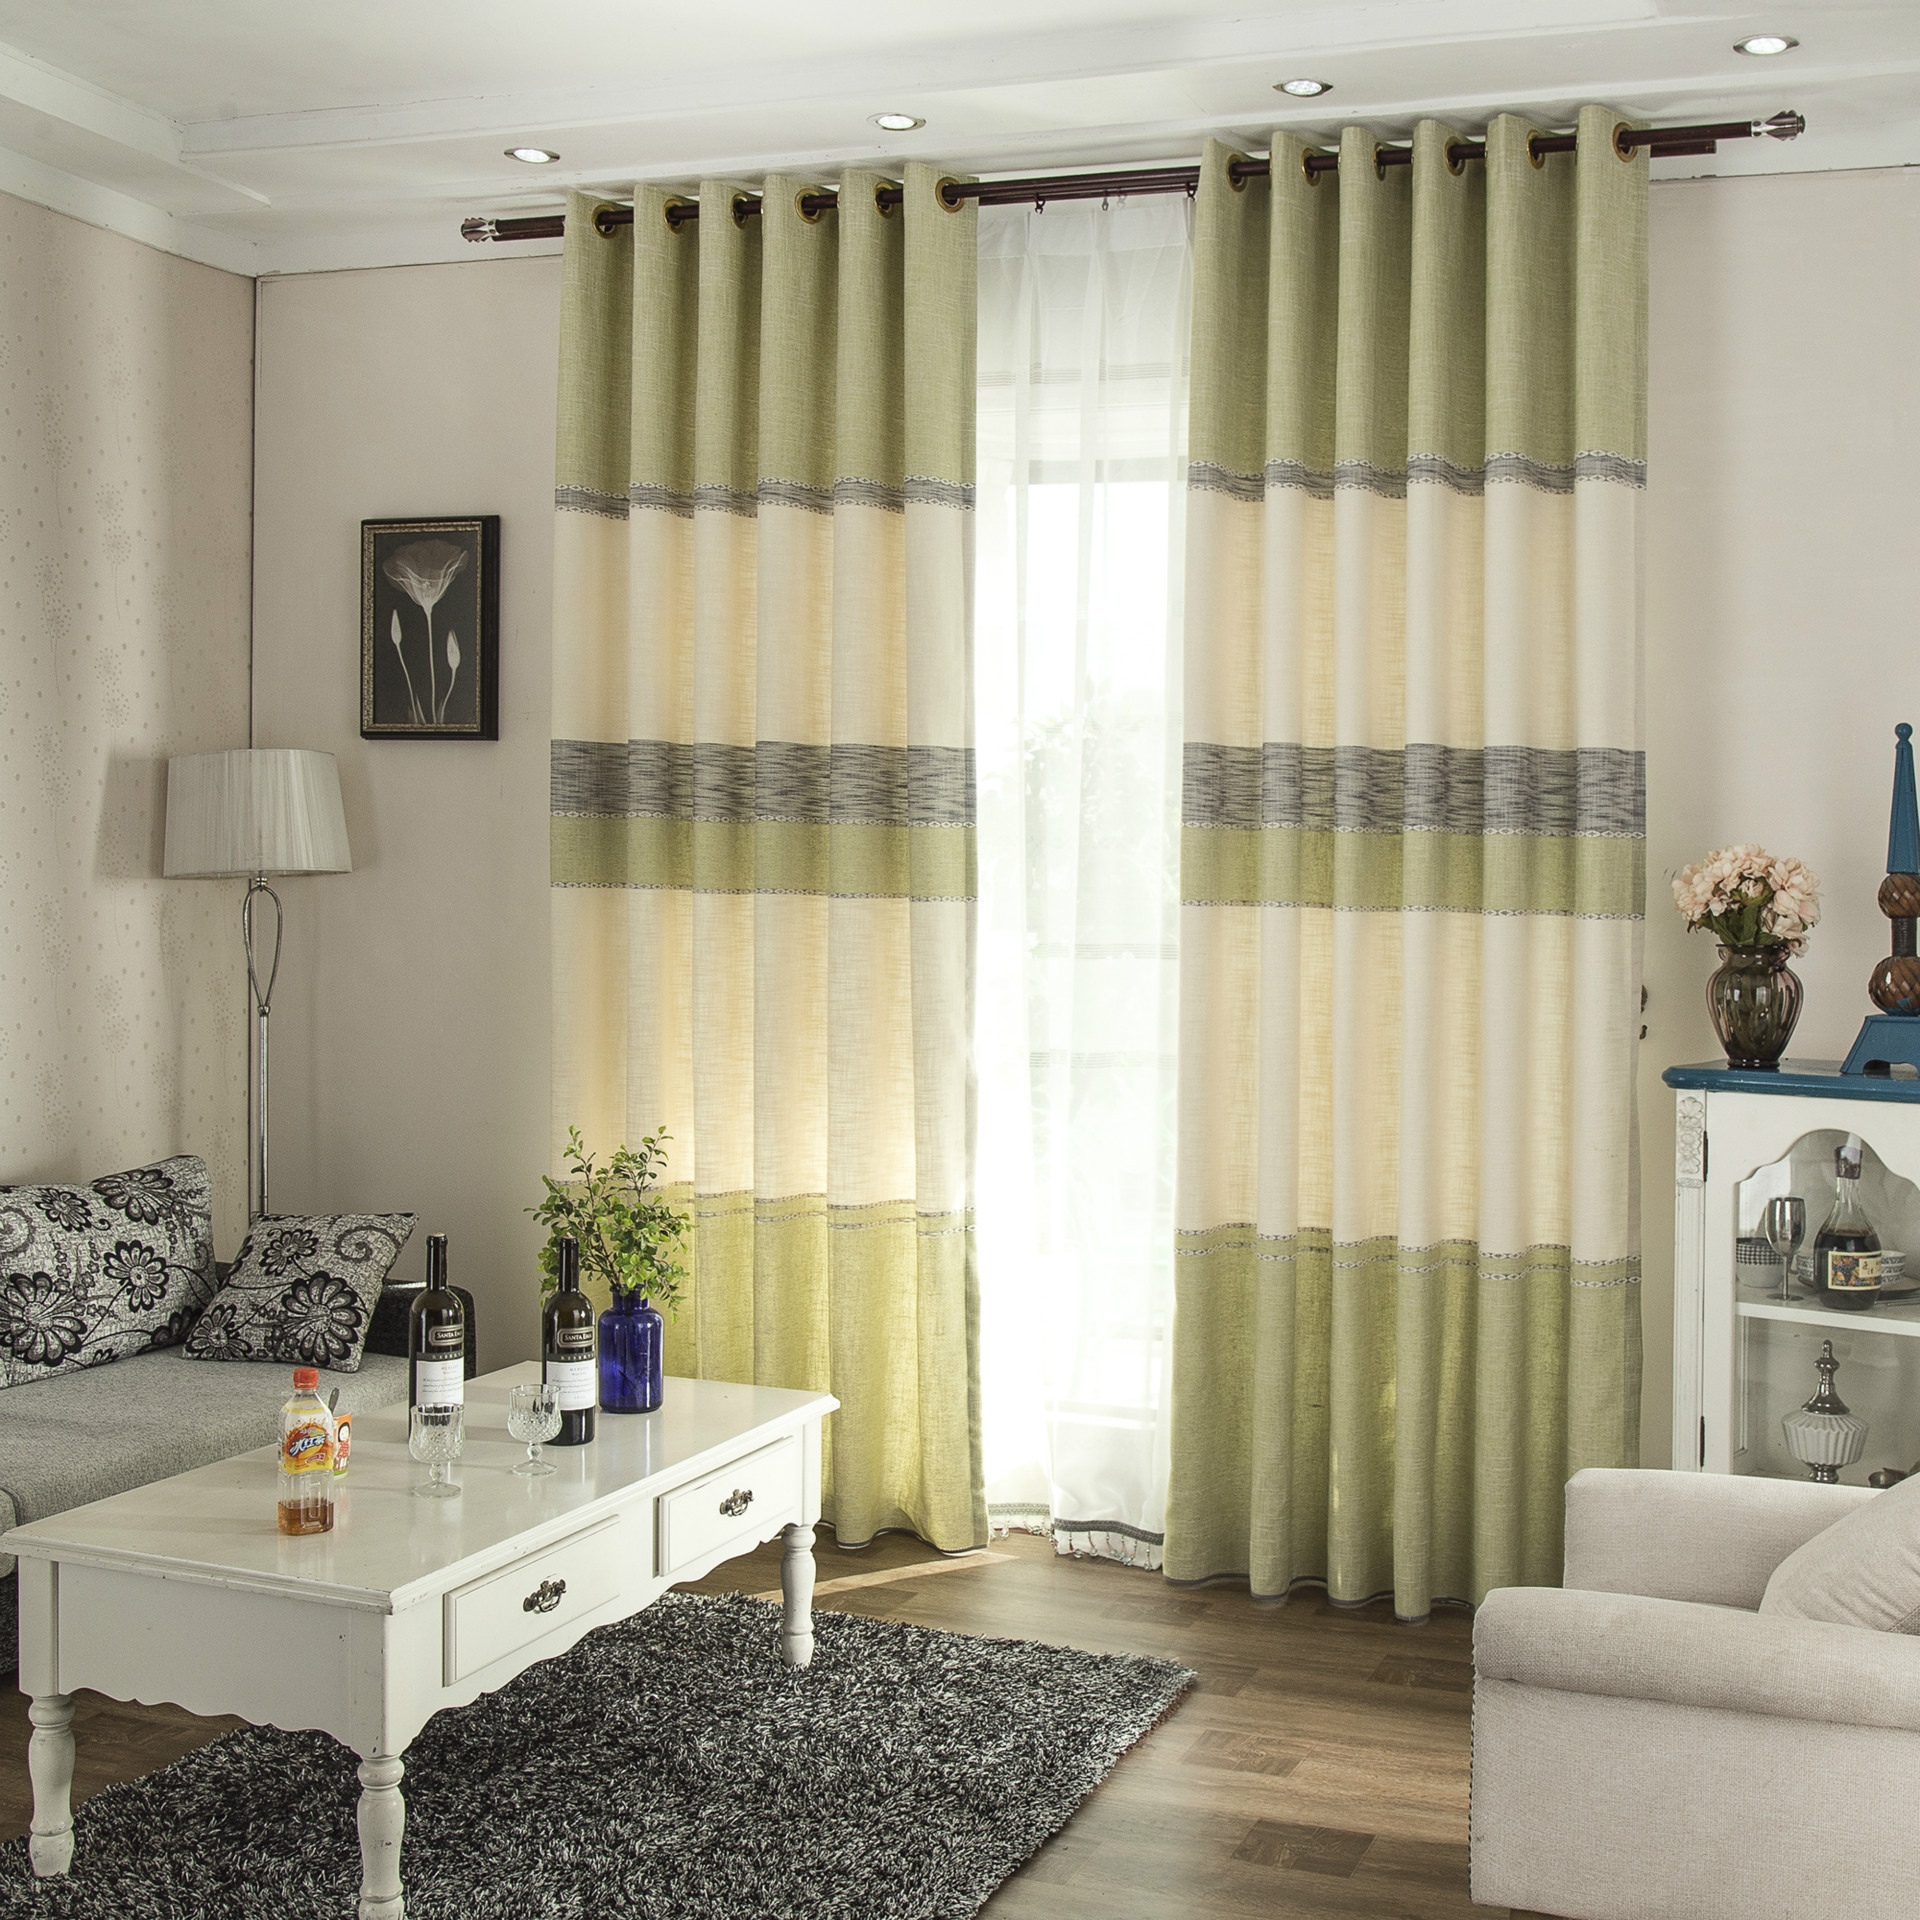 Living room curtains 2016 - Curtains For Bedroom 2016 New Curtains Modern Minimalist Small Fresh Style Bedroom Curtains Special Offer Wholesale